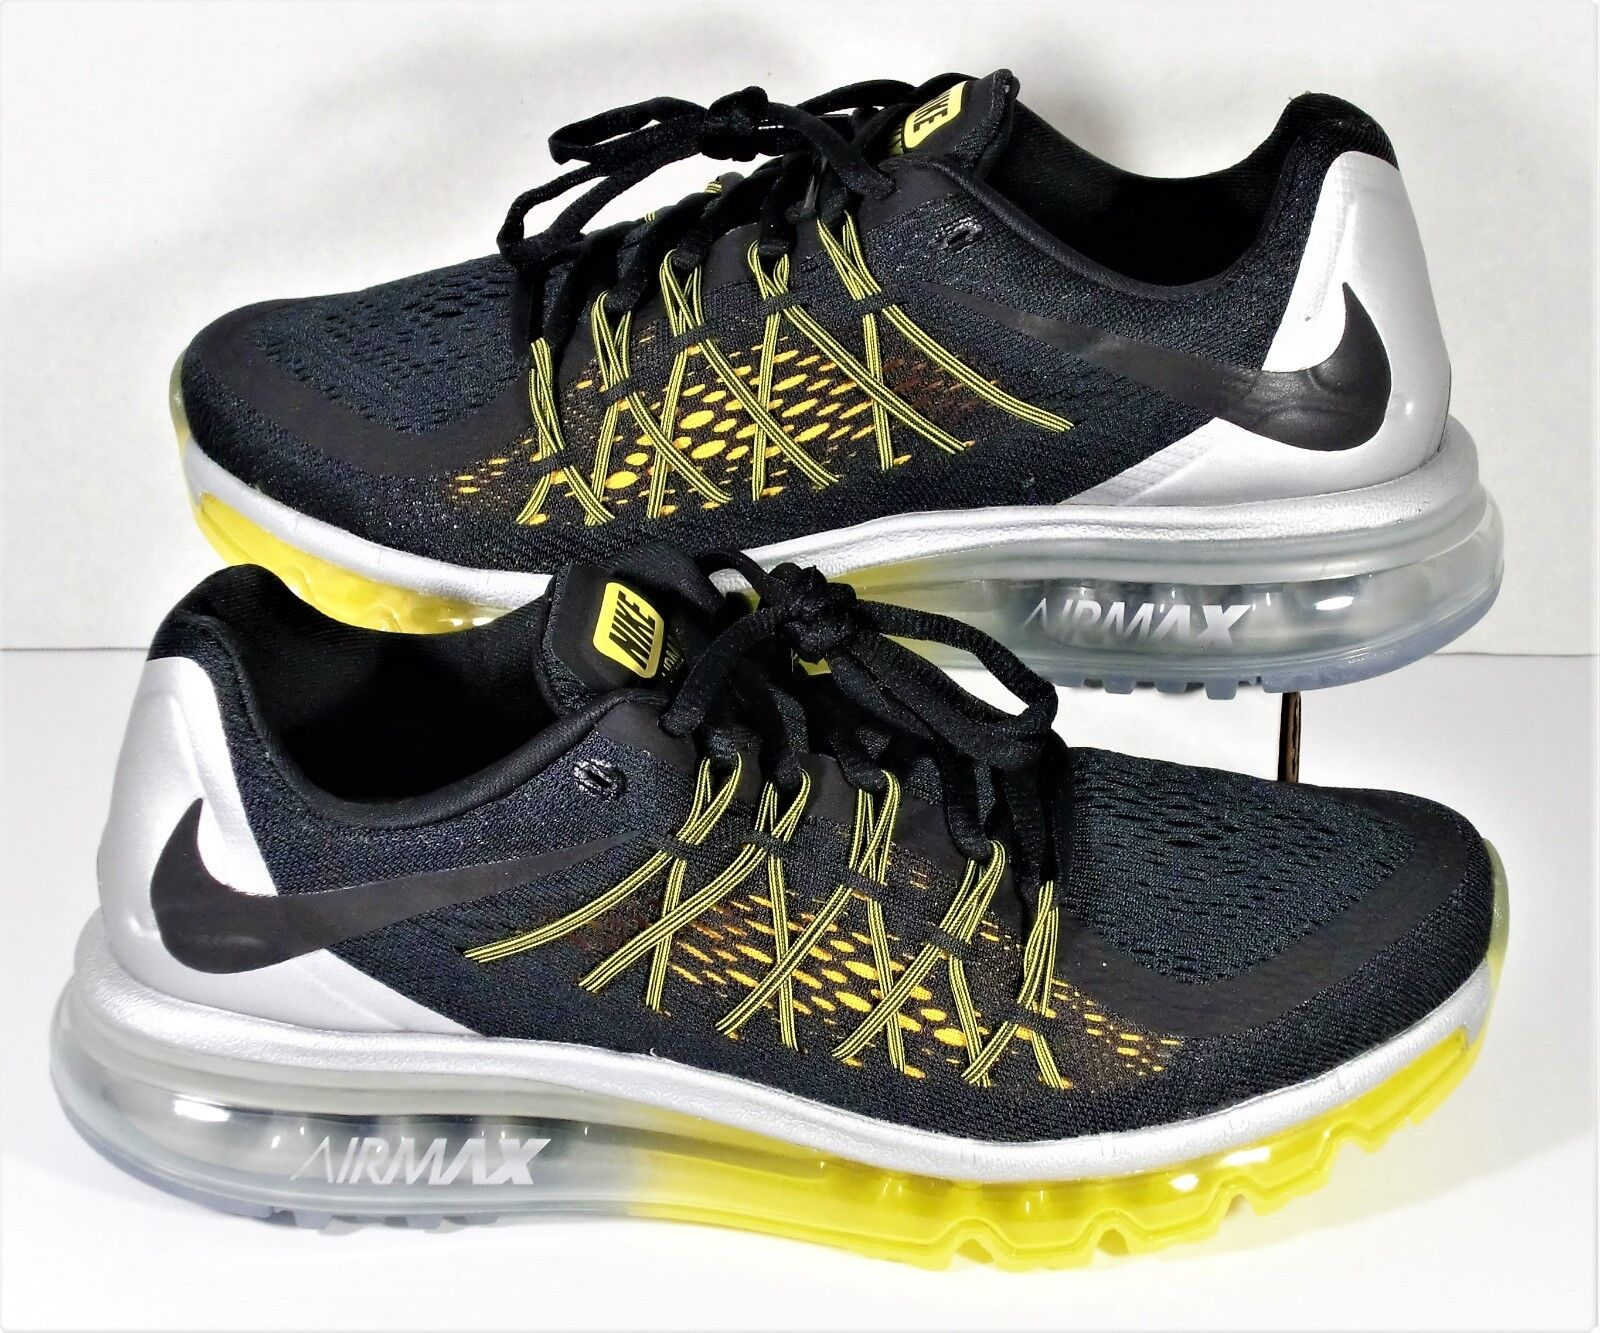 Nike Air Max 2015 Black & Silver & Yellow Running shoes Sz 8.5 NEW 698902 070